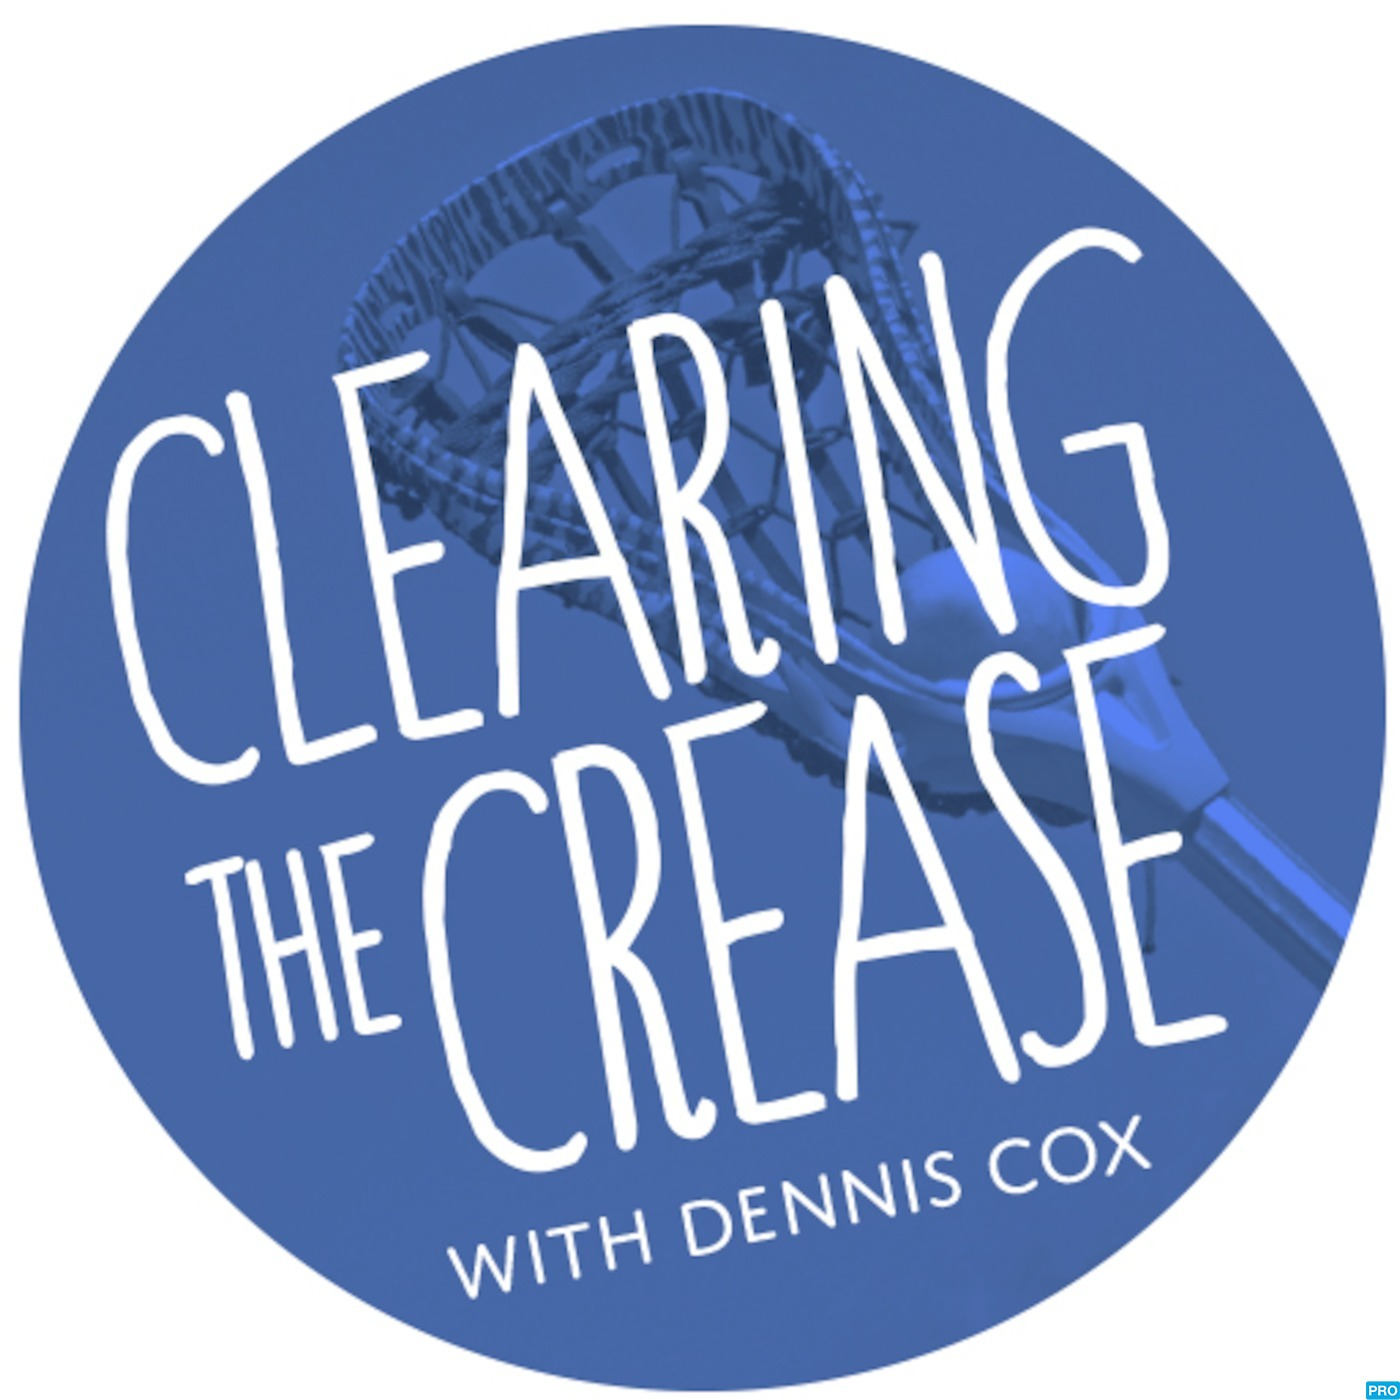 Clearing the Crease with Dennis Cox